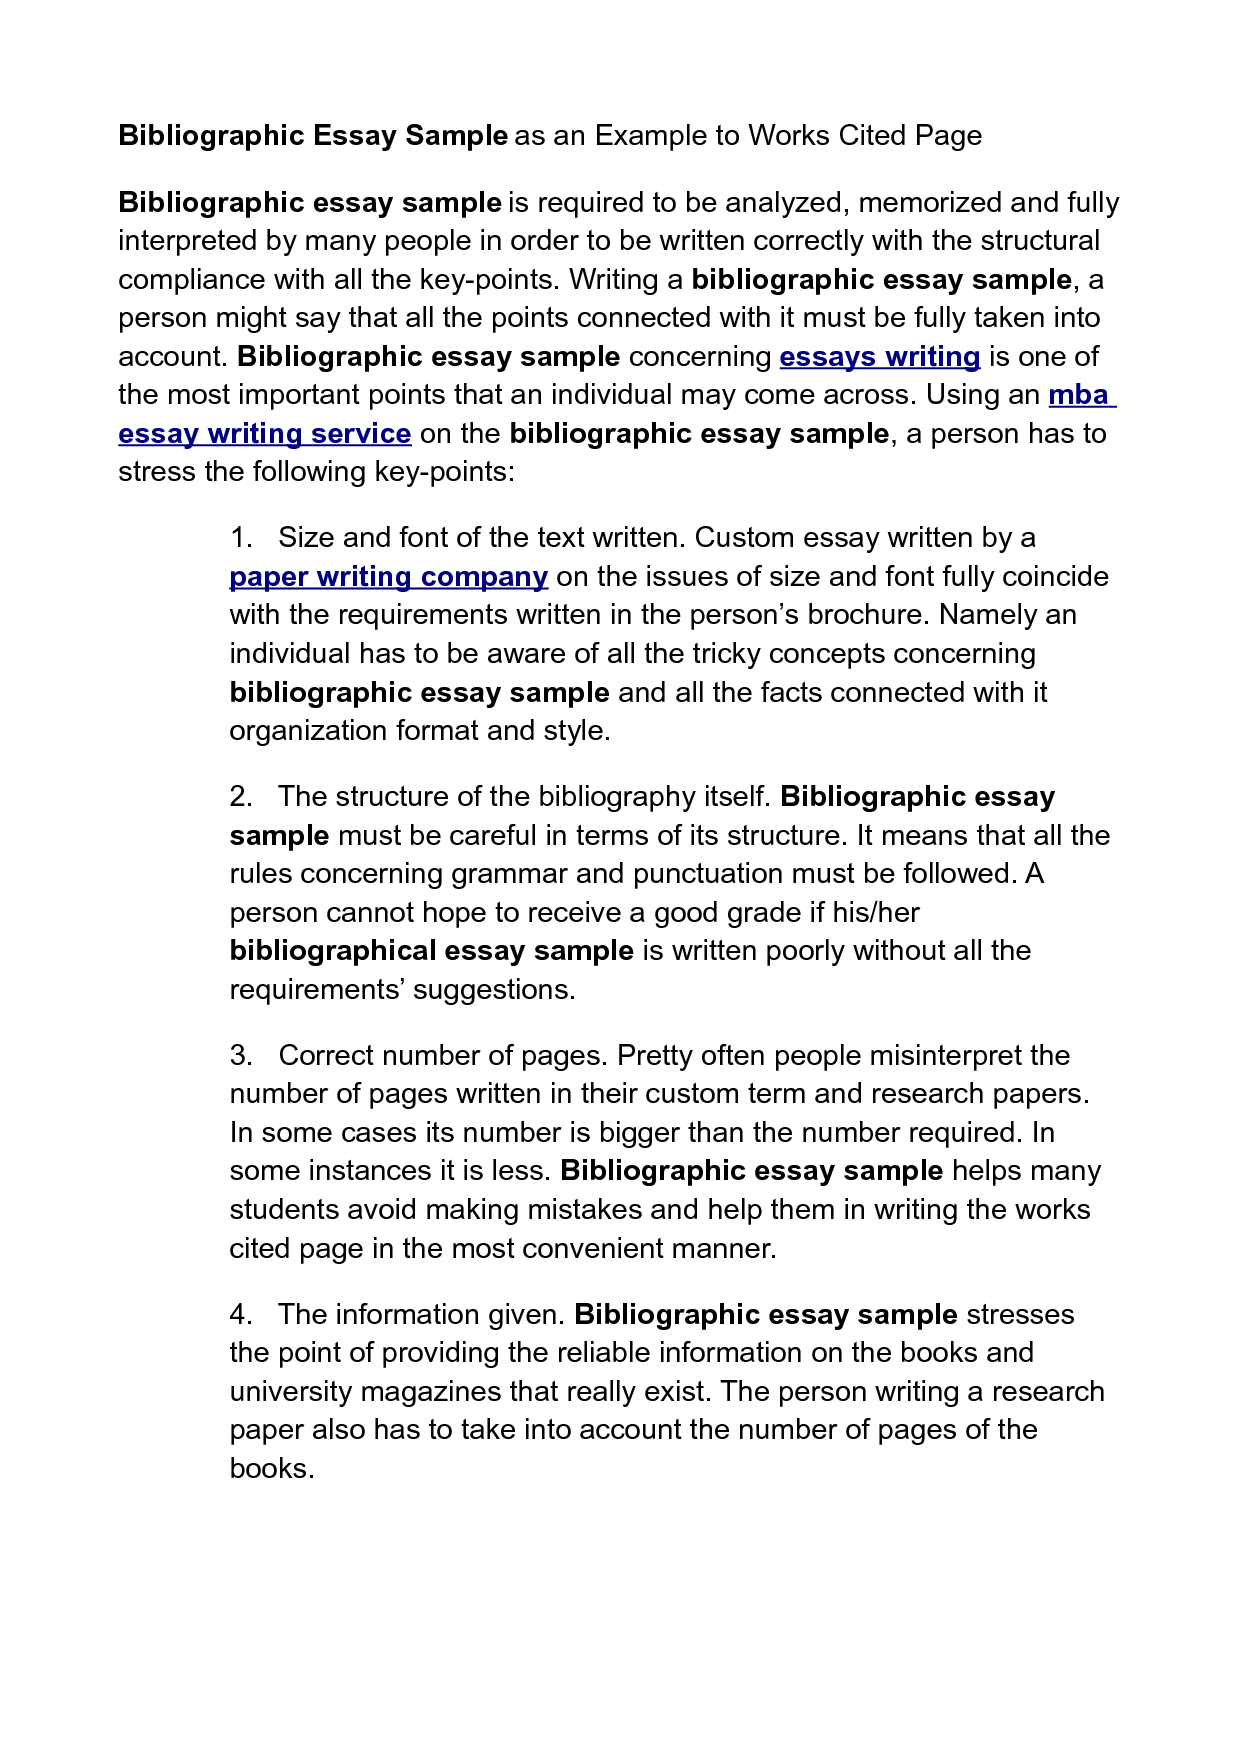 018 How To Cite An Essay Example Sample Persuasive With Works Cited Of Mla L Archaicawful In A Book 8th Edition Work Format Within Apa Full